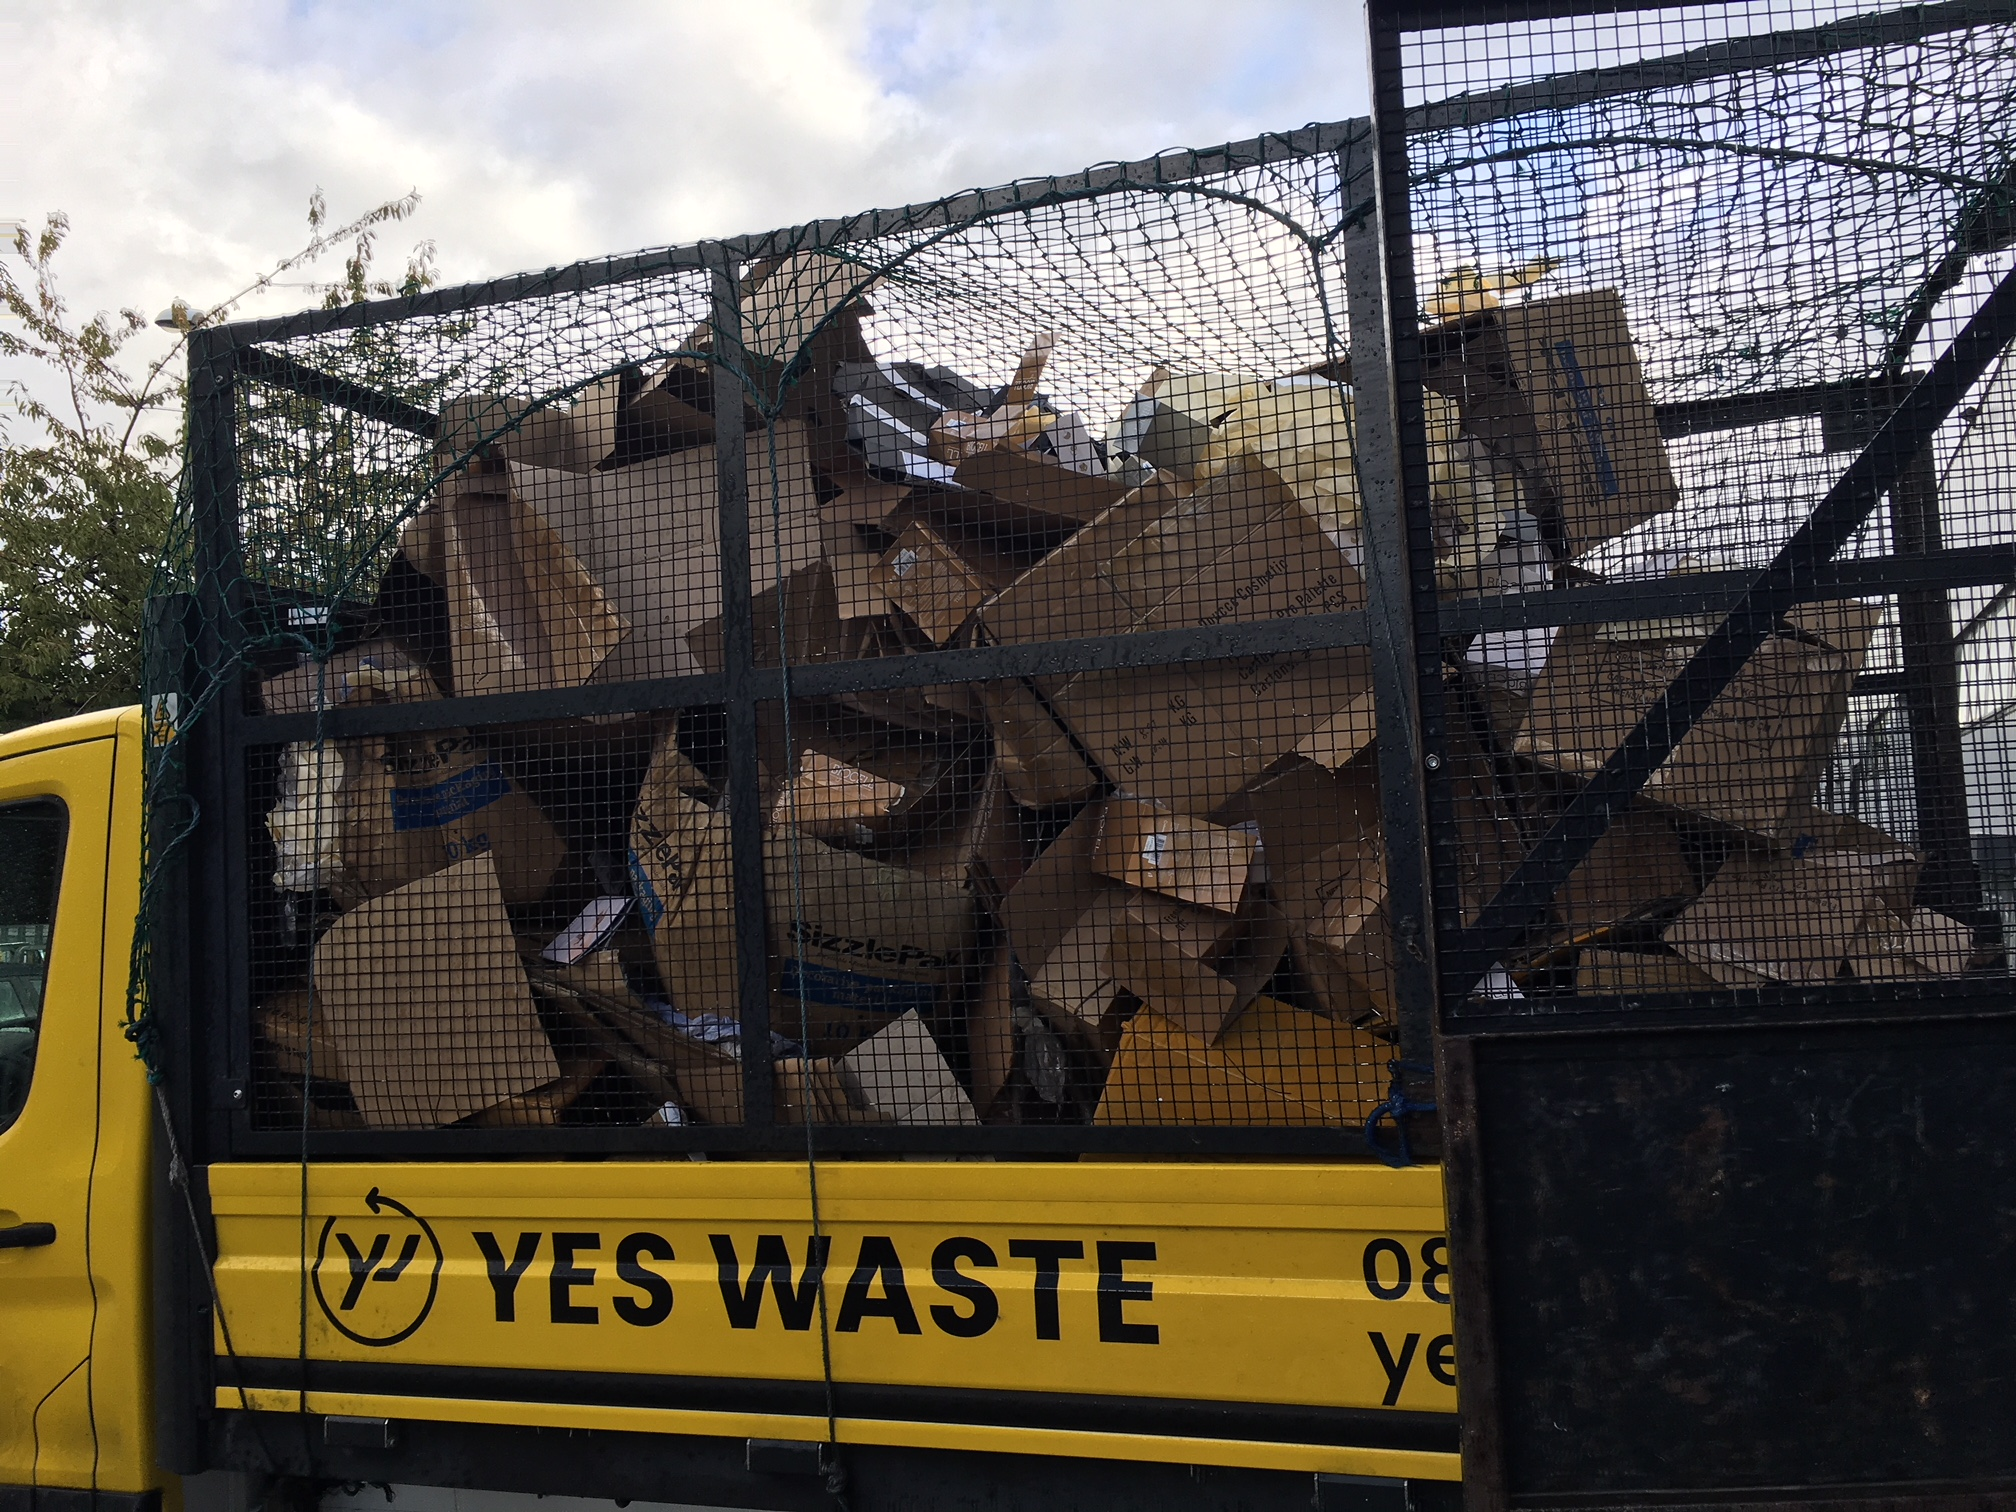 Cardboard on a Yes Waste van